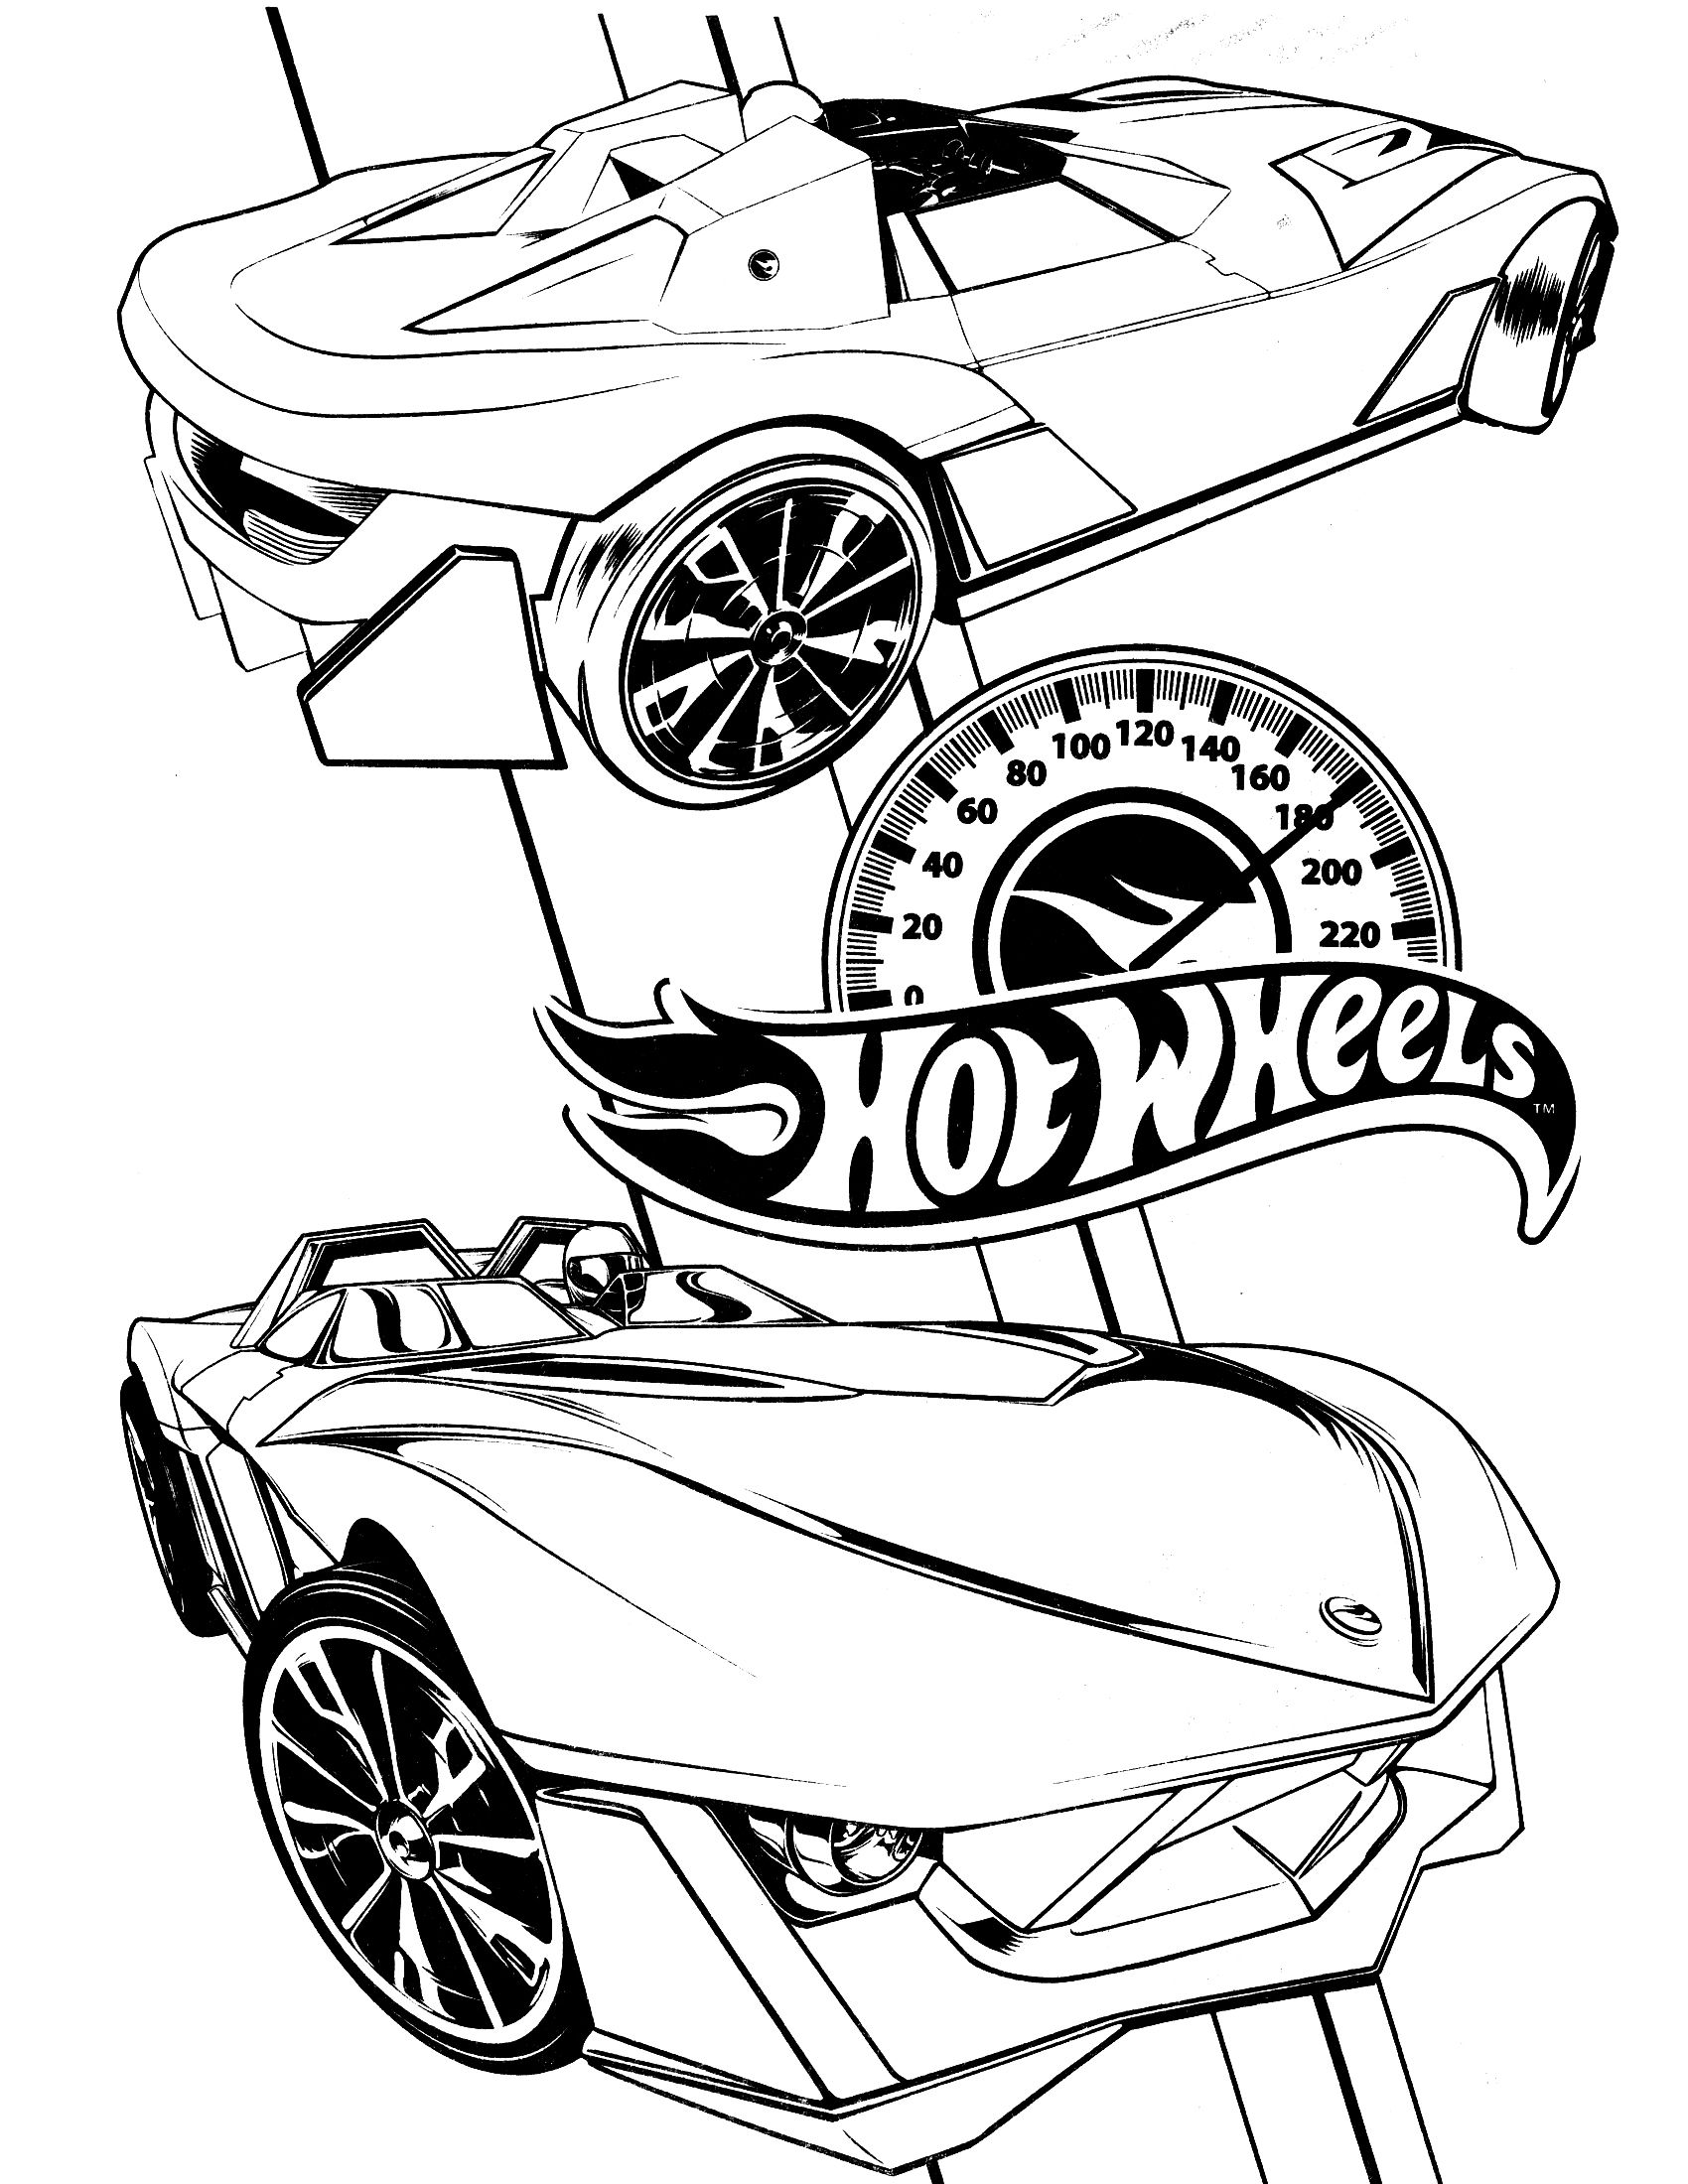 Hot Wheels Coloring Page Ideas Para Sebas Hot Wheels Birthday